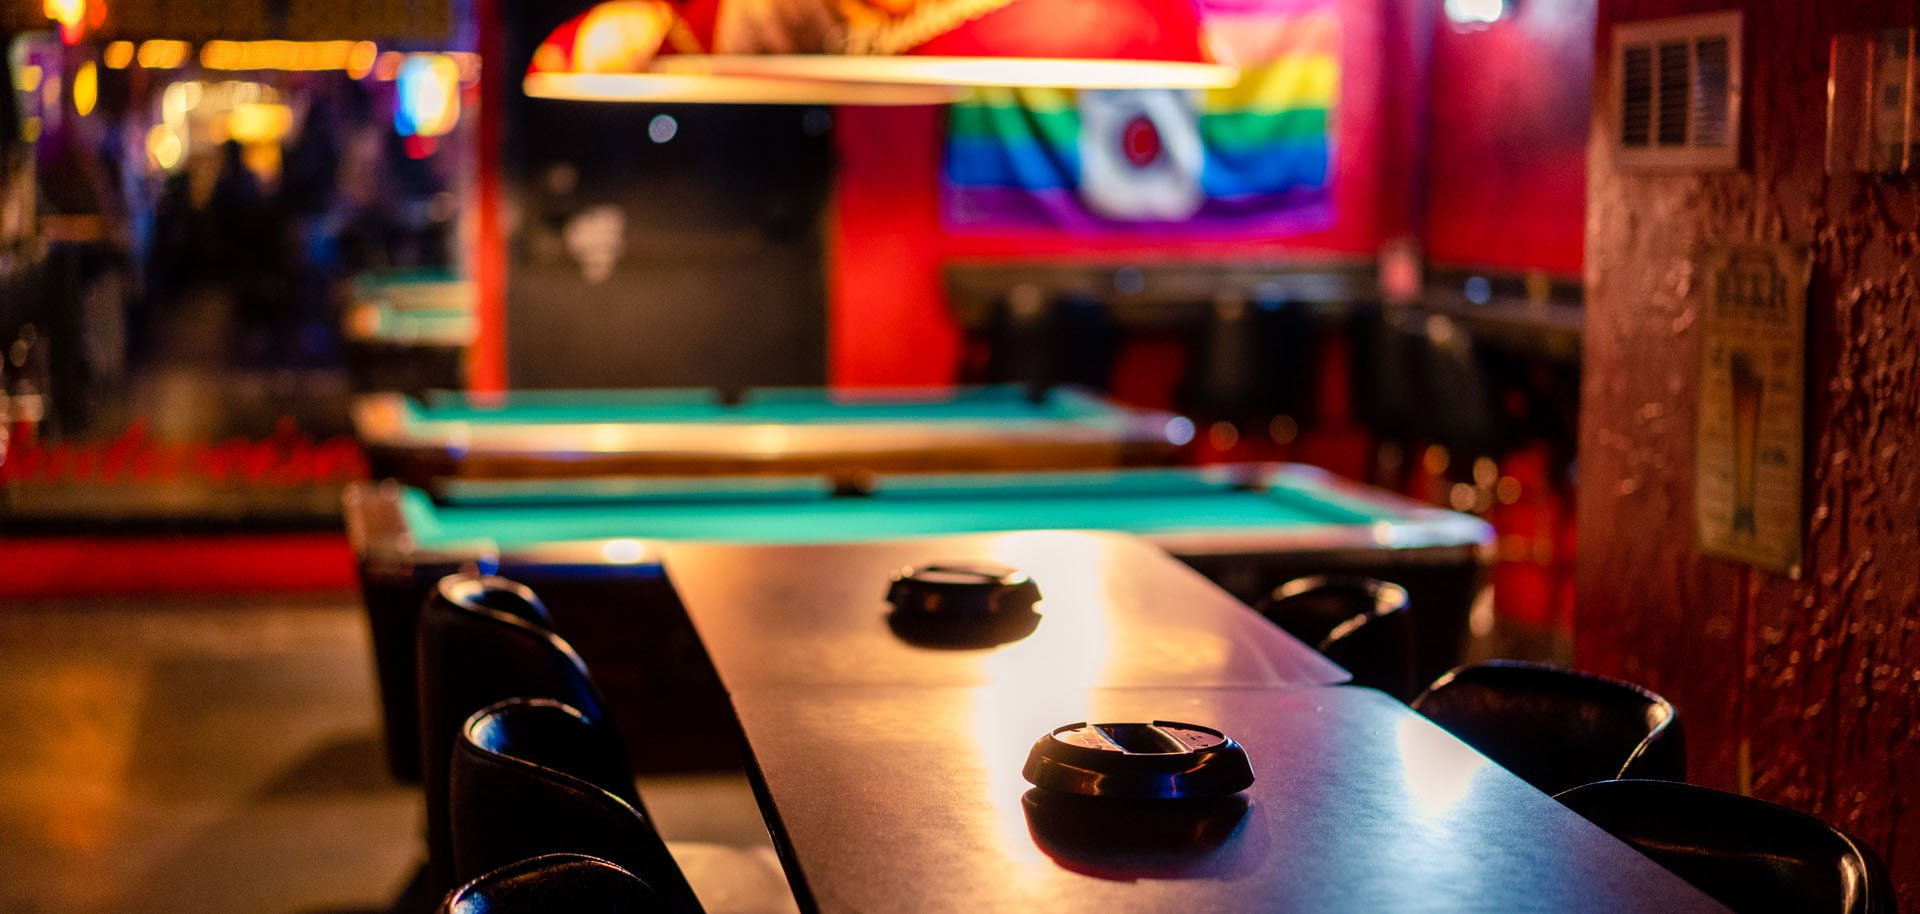 A table, two pool tables, and pride flag at Yellow Brick Road Pub in Tulsa, Oklahoma.